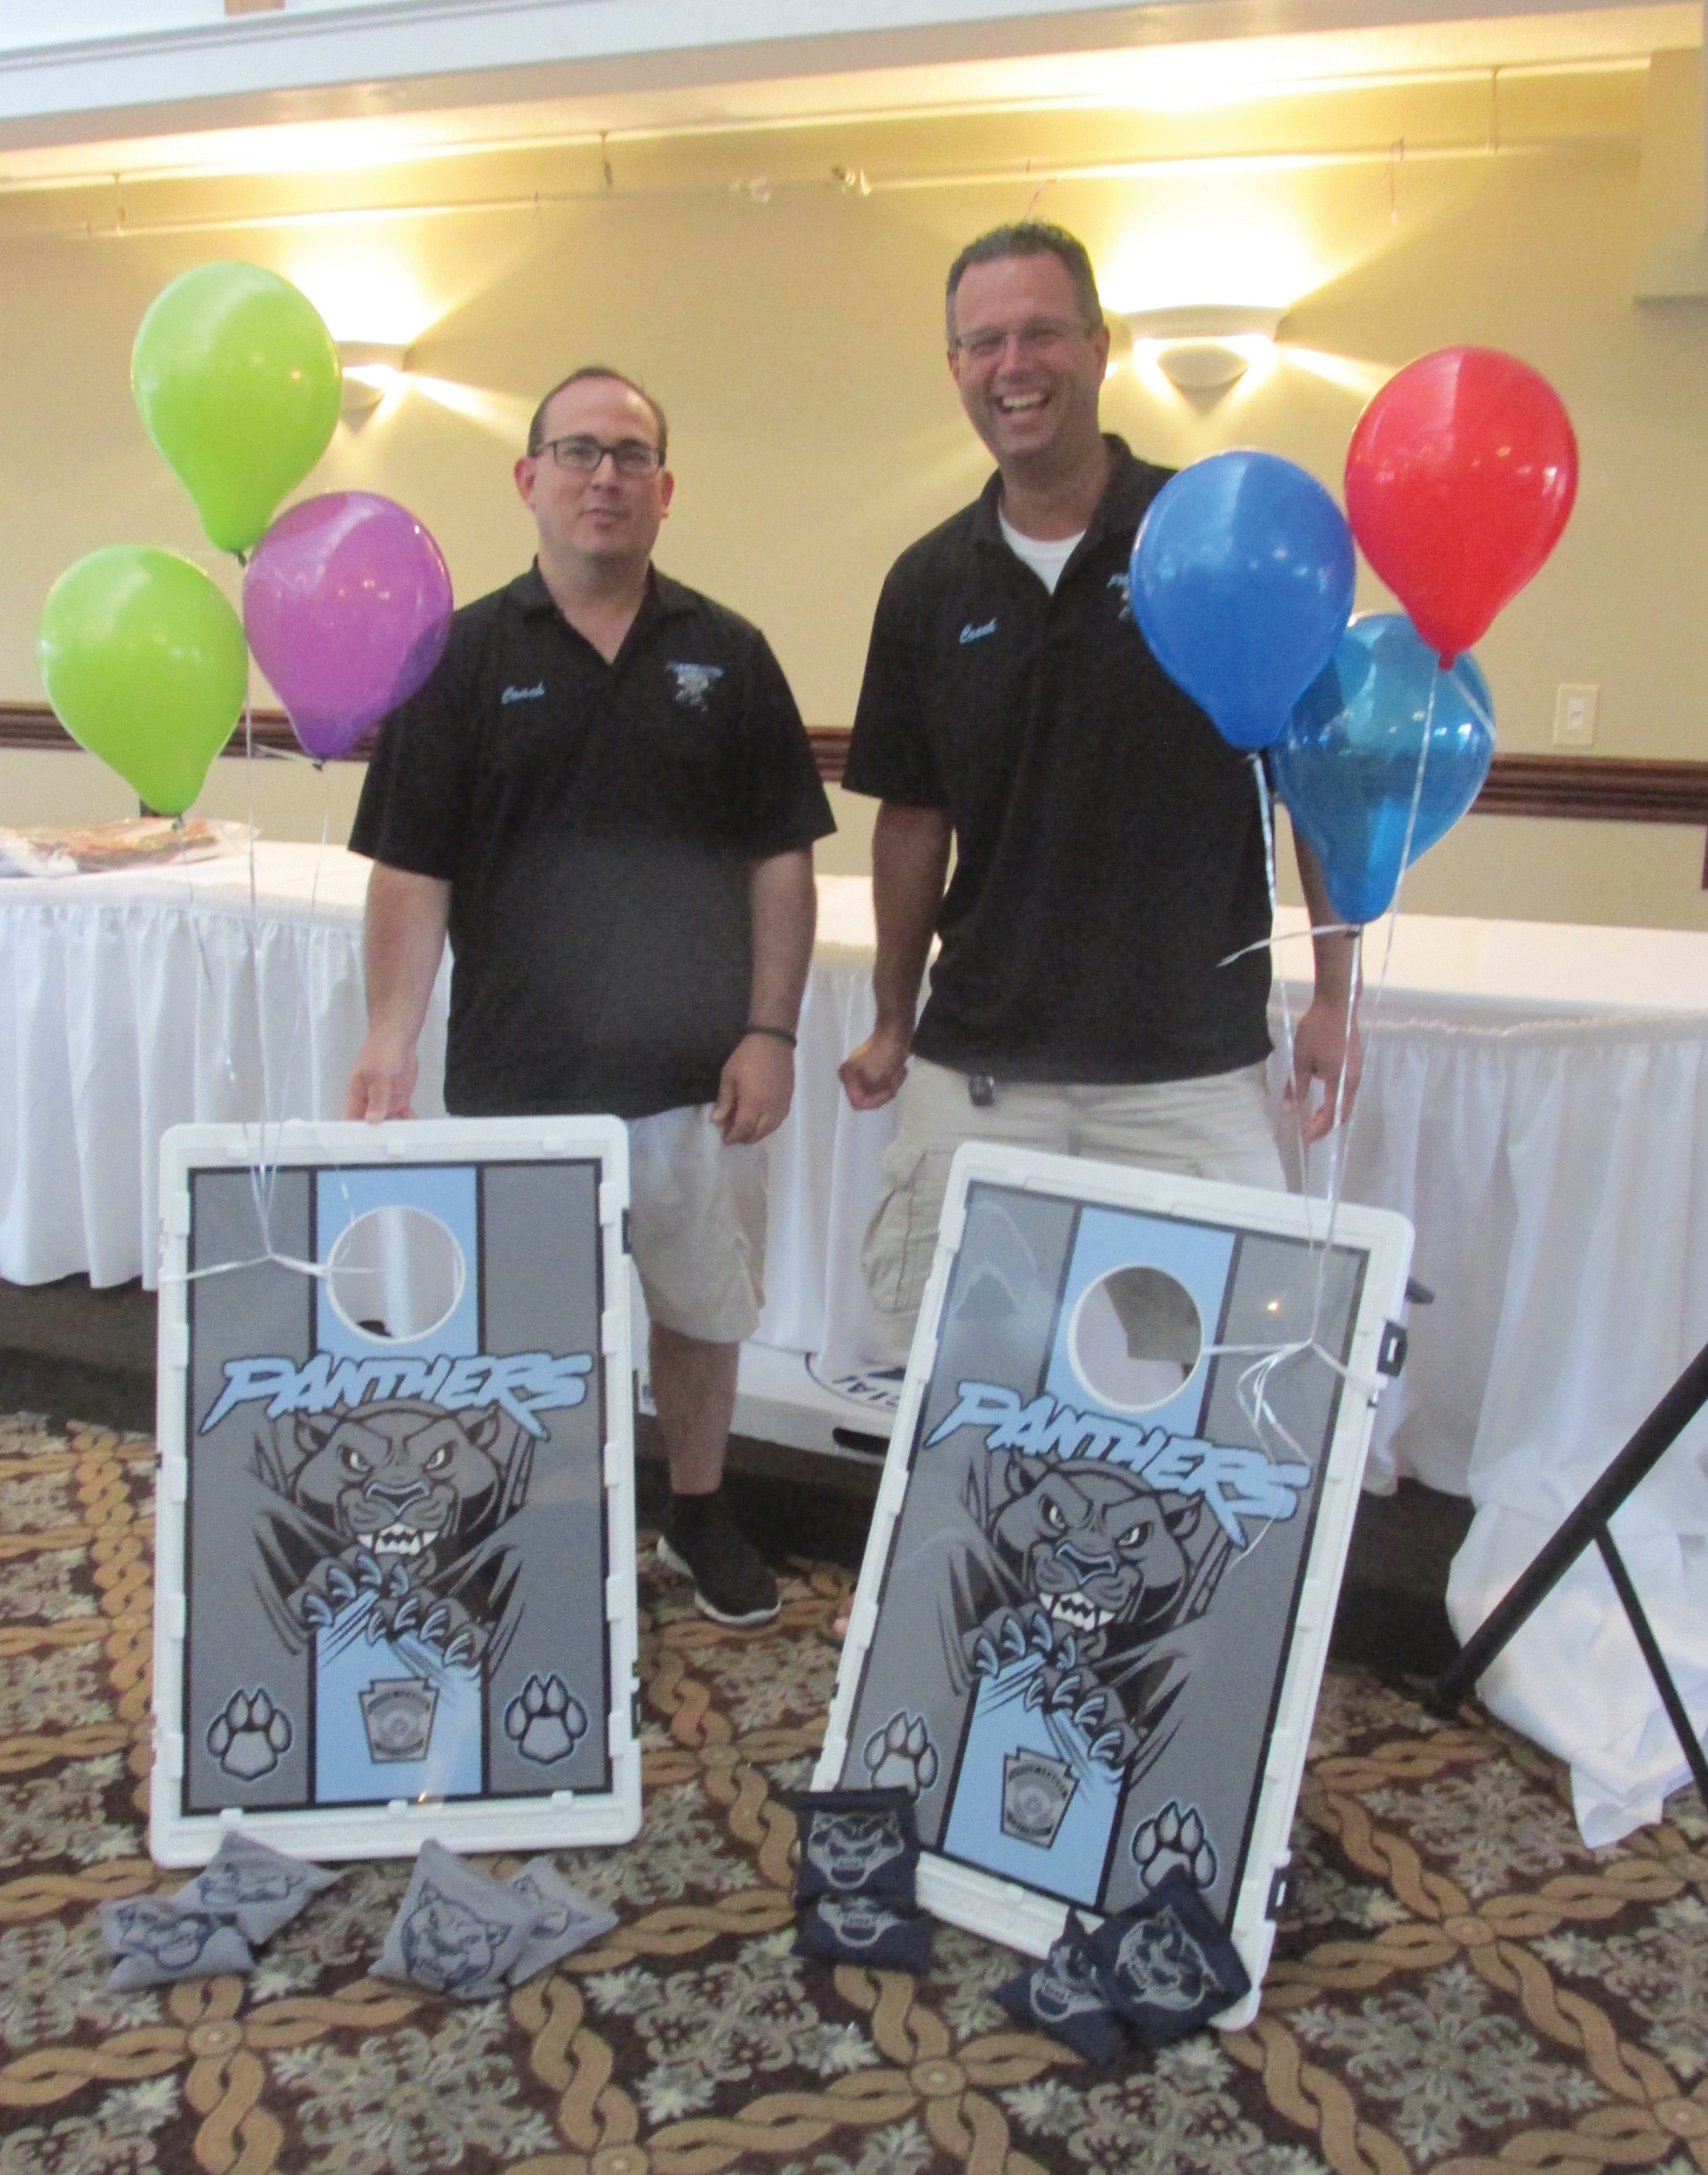 COACHES CORNER: Johnston Girls Softball League coaches Derek Carrier and Mike Alvin enjoy a lighter moment while holding the highly-popular cornhole boards that were won by the Pilkington family during Saturday's banquet.